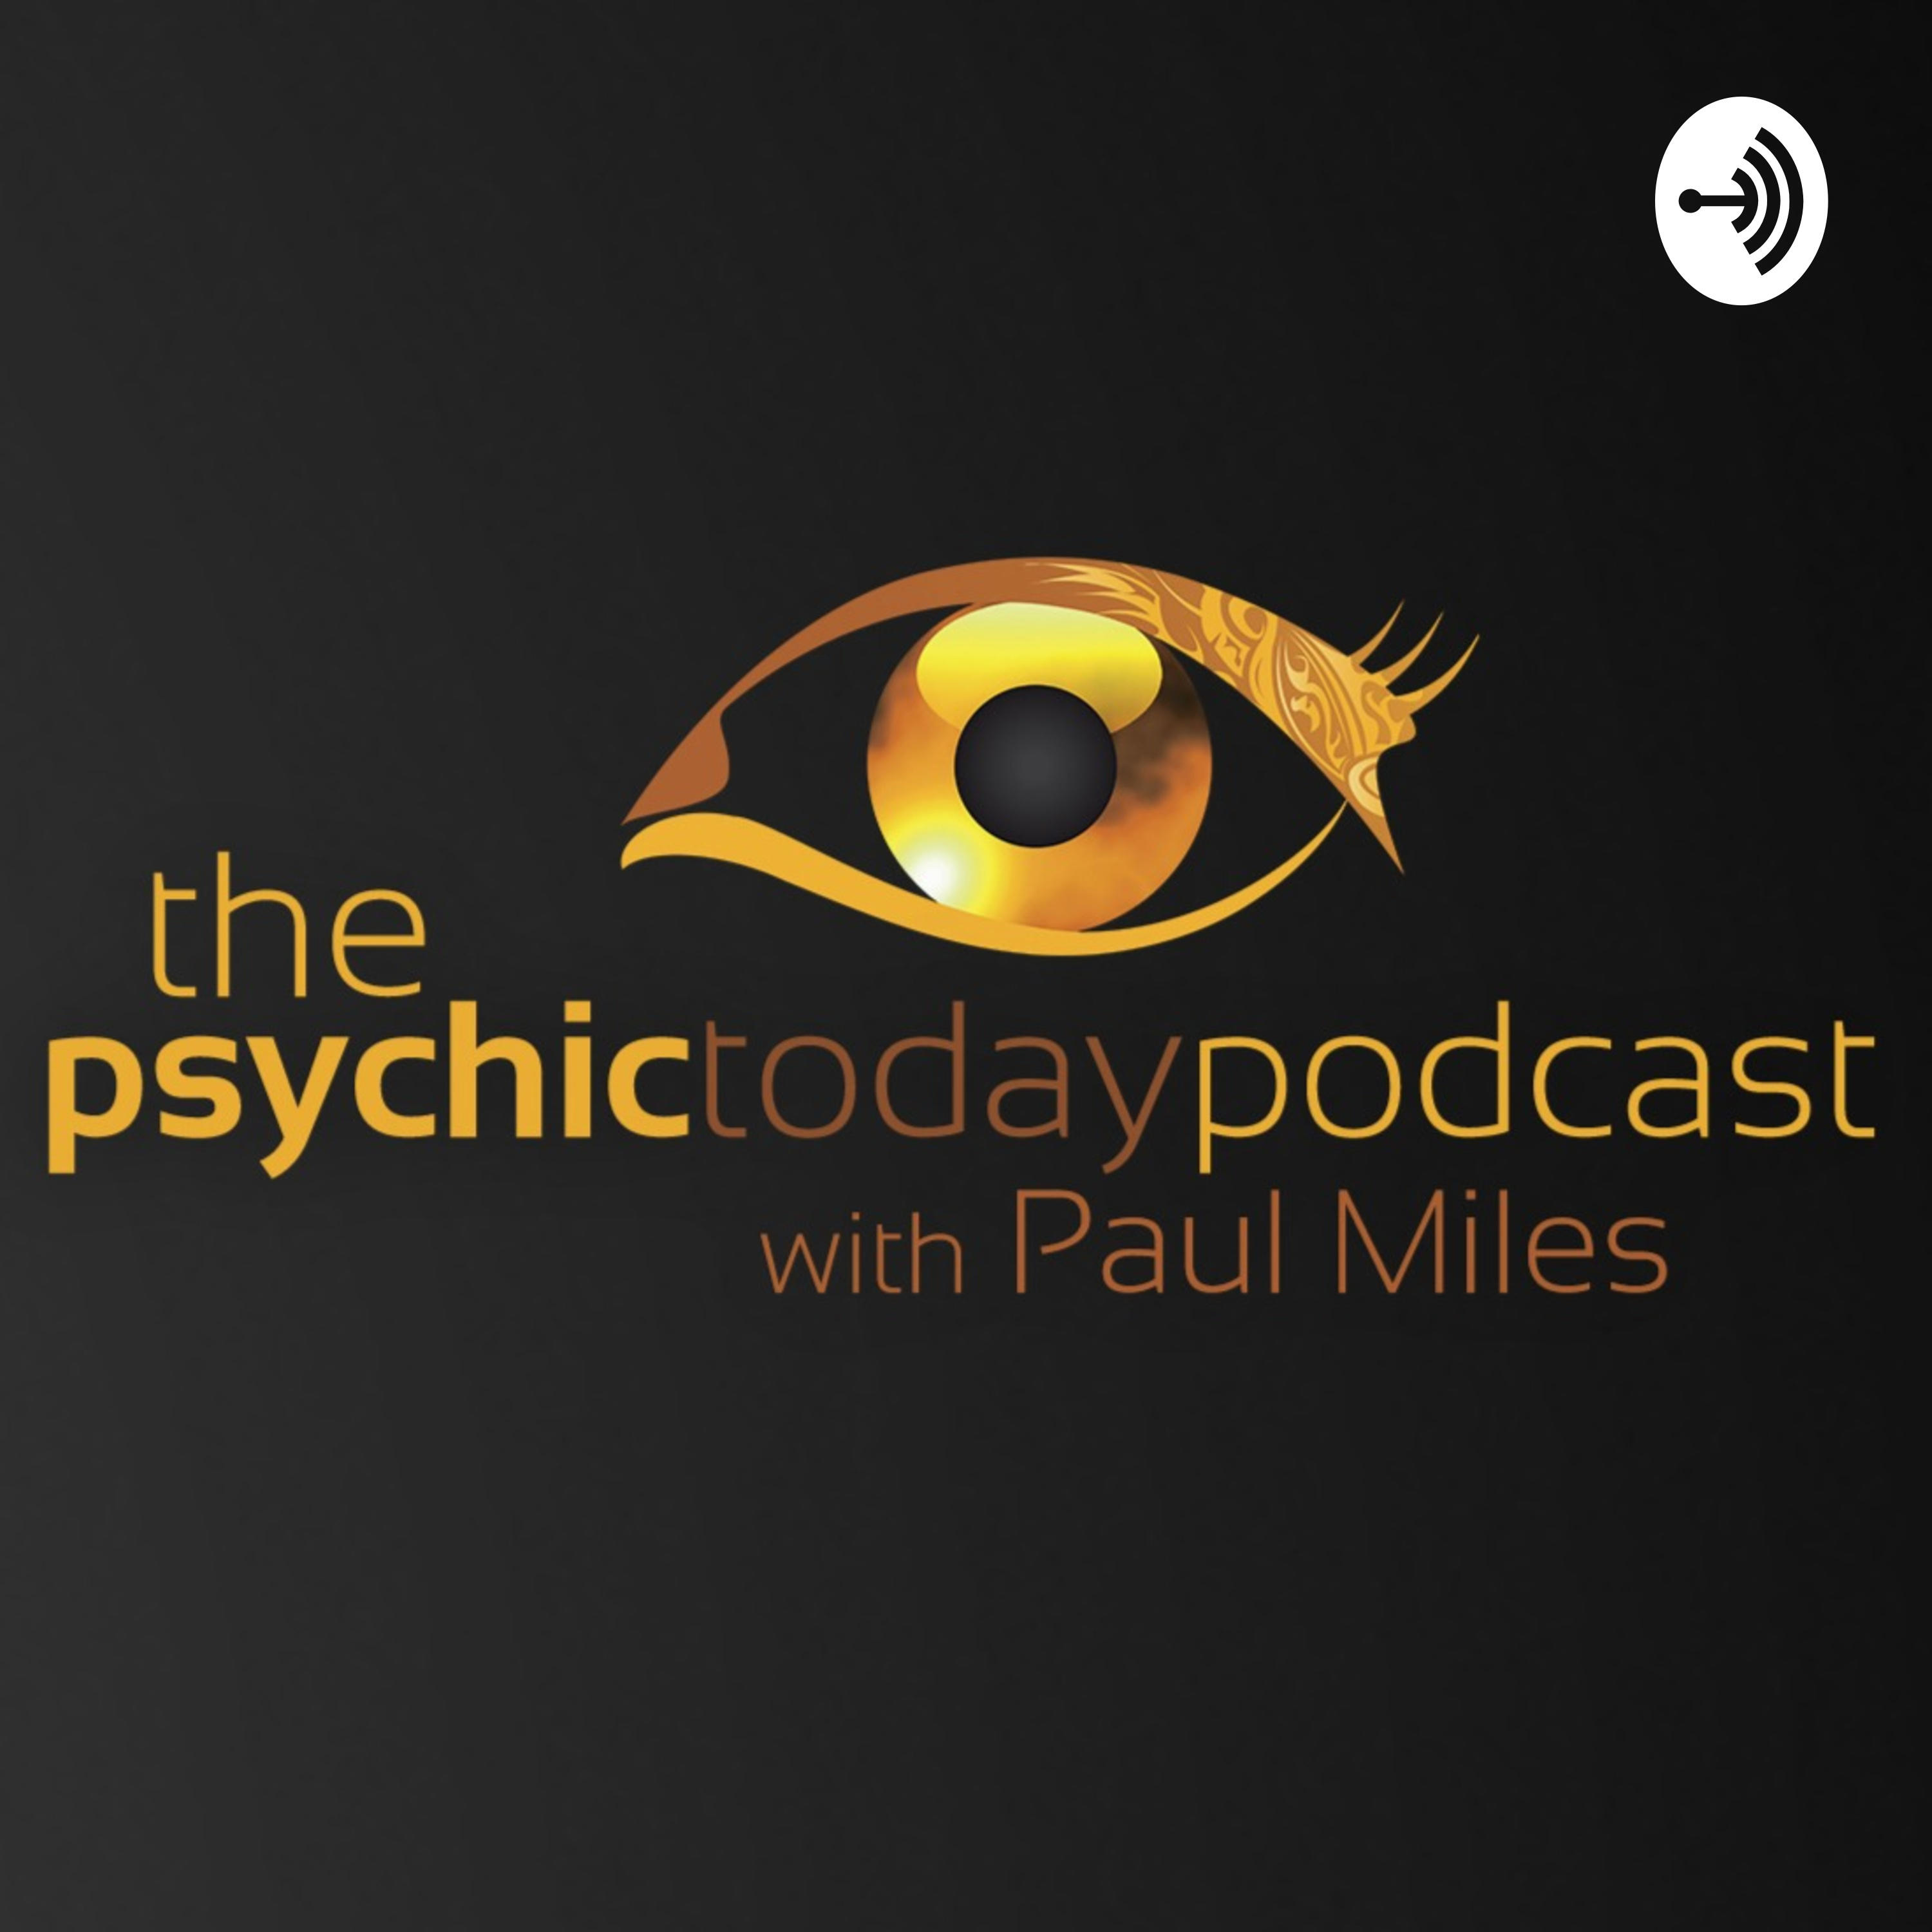 The Official PsychicToday Podcast